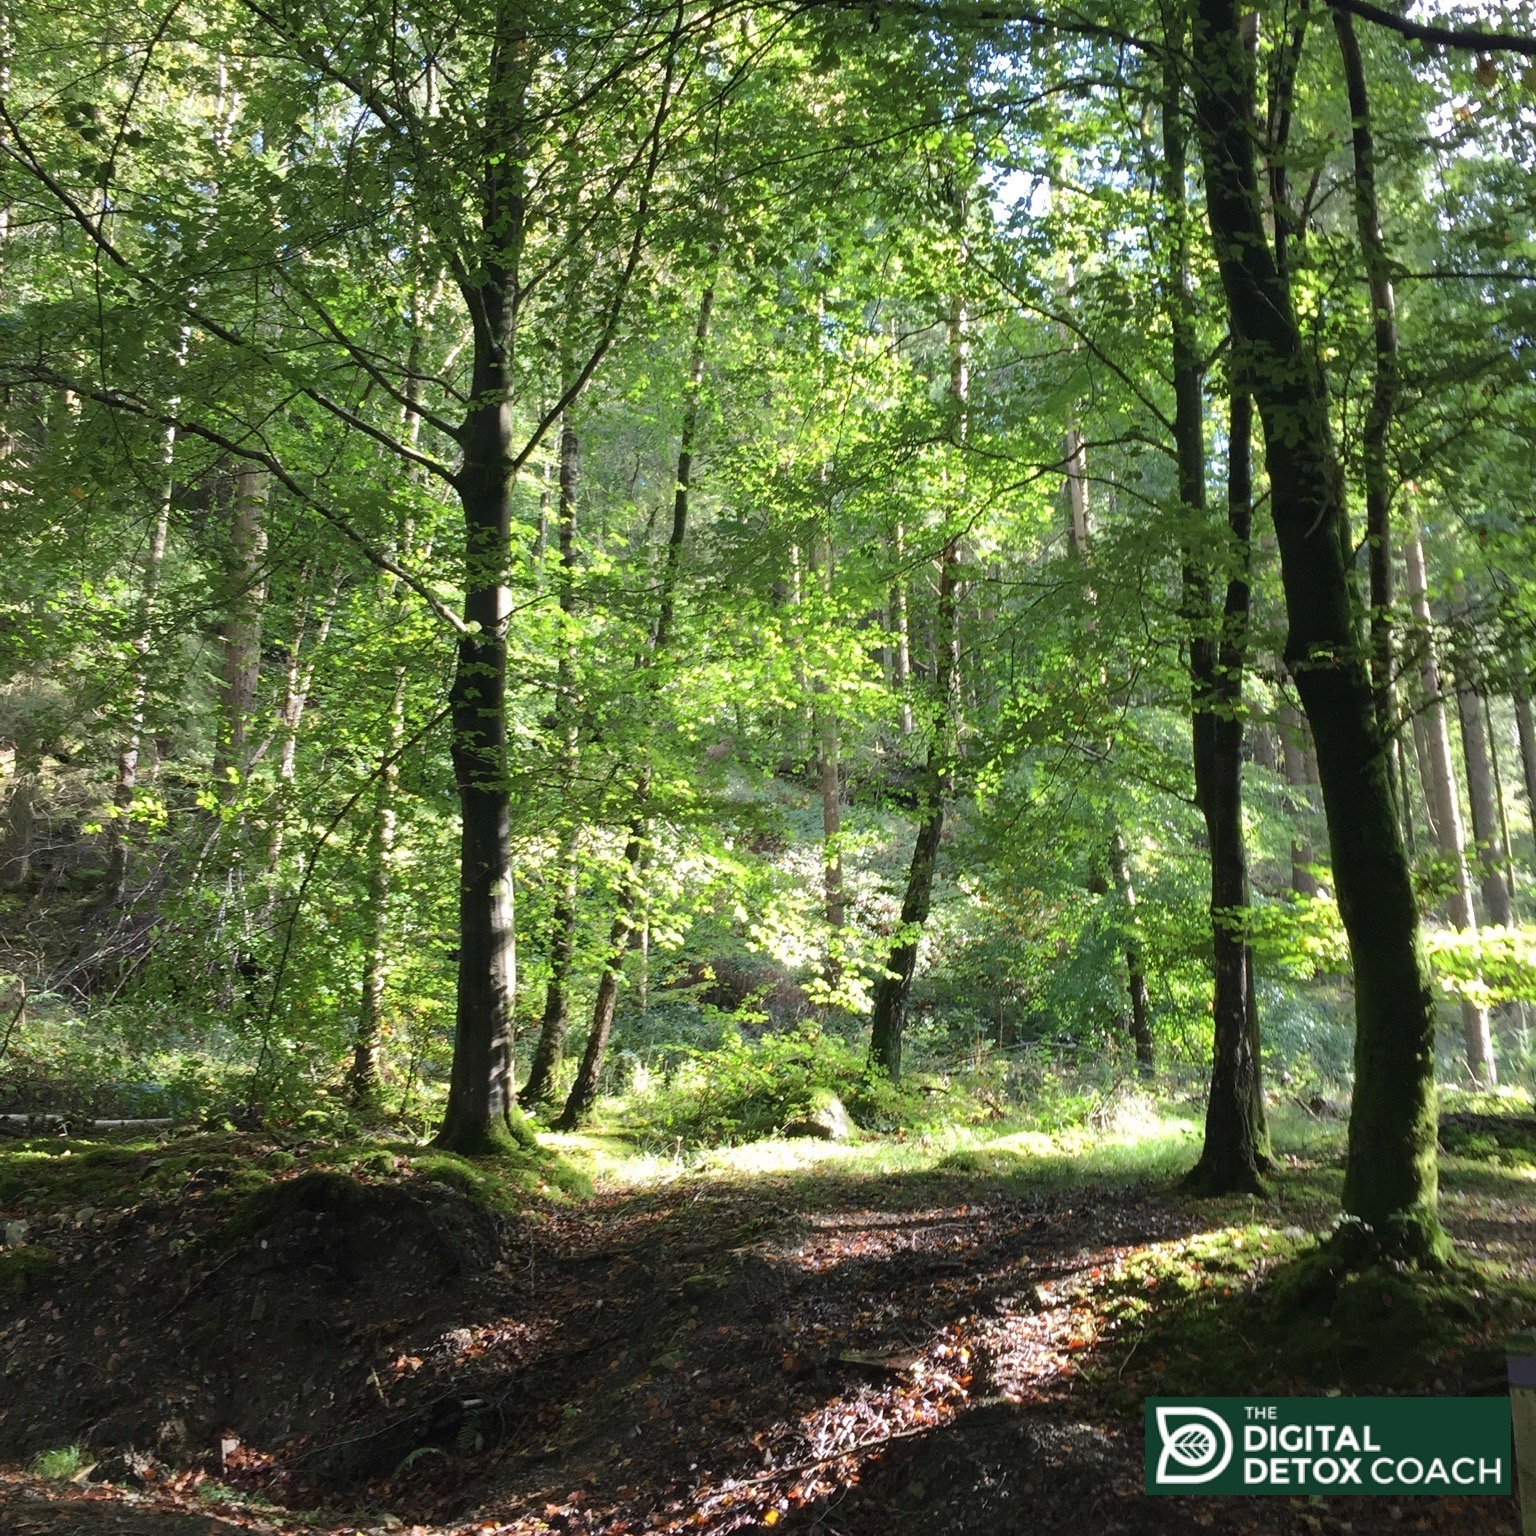 The Digital Detox Coach Why Forest Bathing is the Perfect Digital Detox Link Thumbnail | Linktree